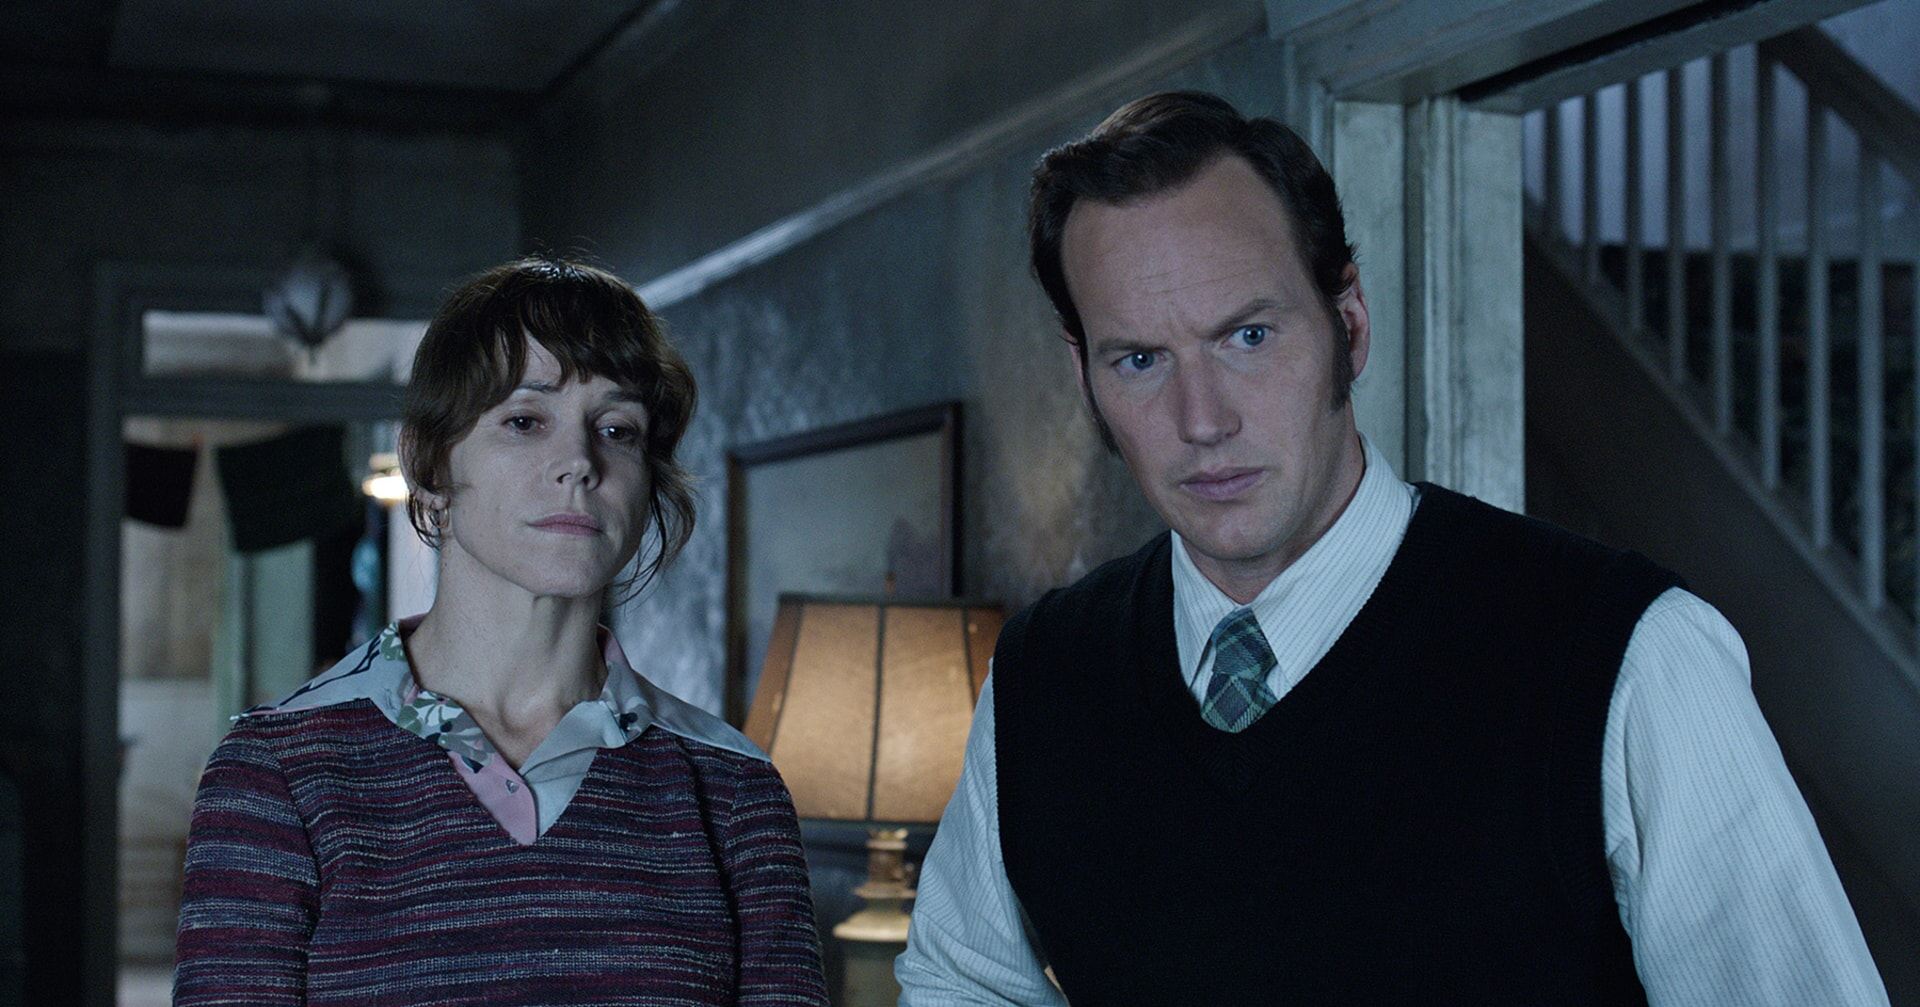 FRANCES O'CONNOR as Peggy Hodgson and PATRICK WILSON as Ed Warren standing next to each other